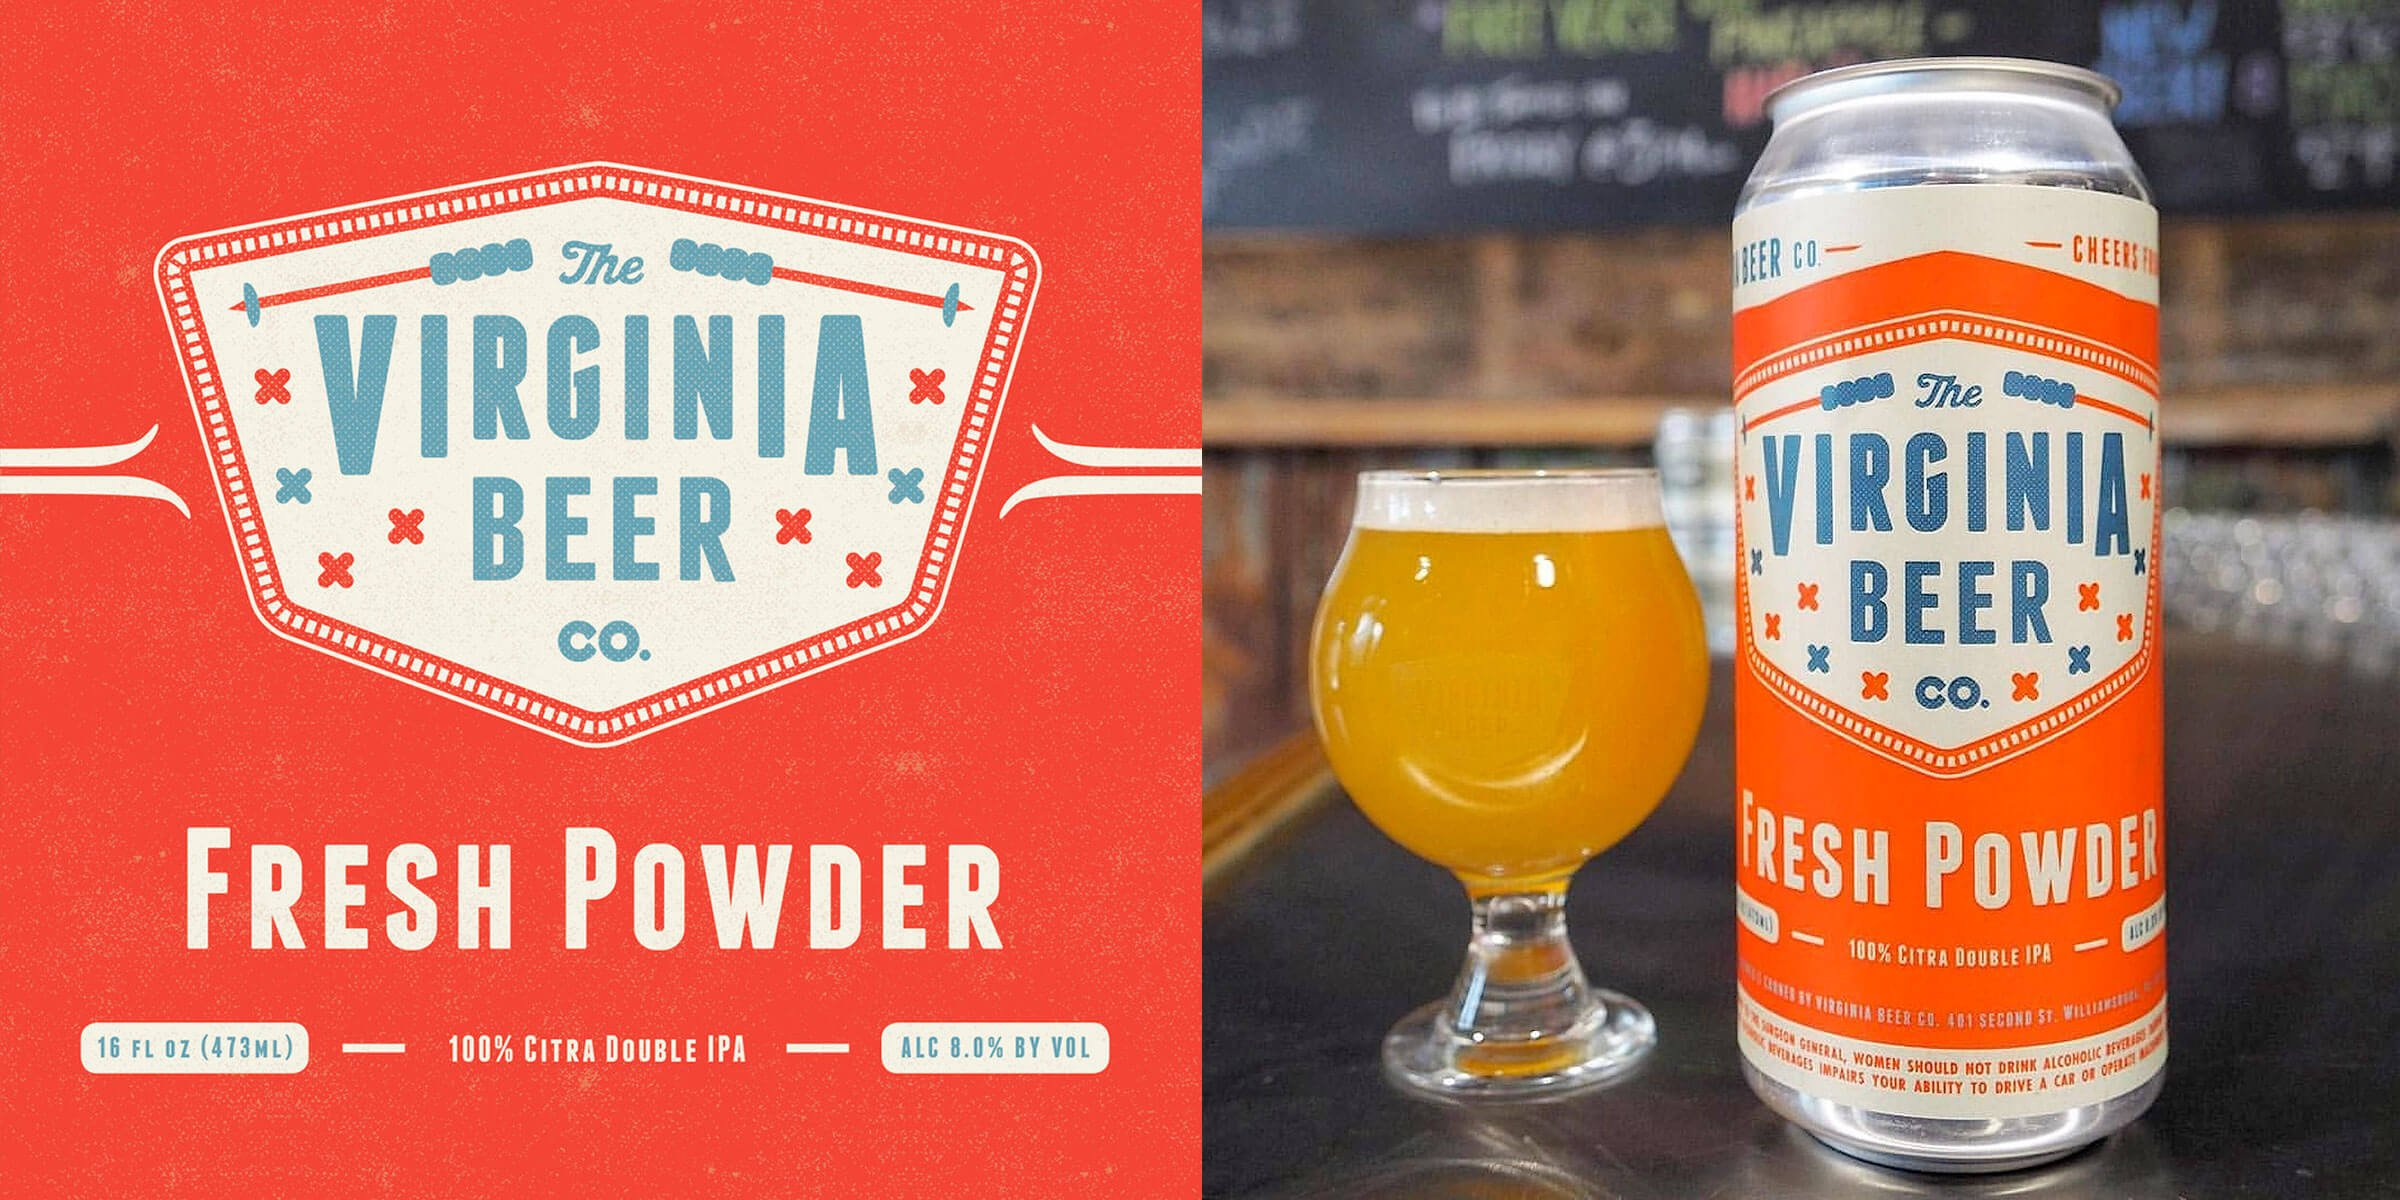 Slopes open every February for the return of Fresh Powder and The Virginia Beer Company is releasing this seasonal 100% Citra Double Dry-Hopped Double IPA.